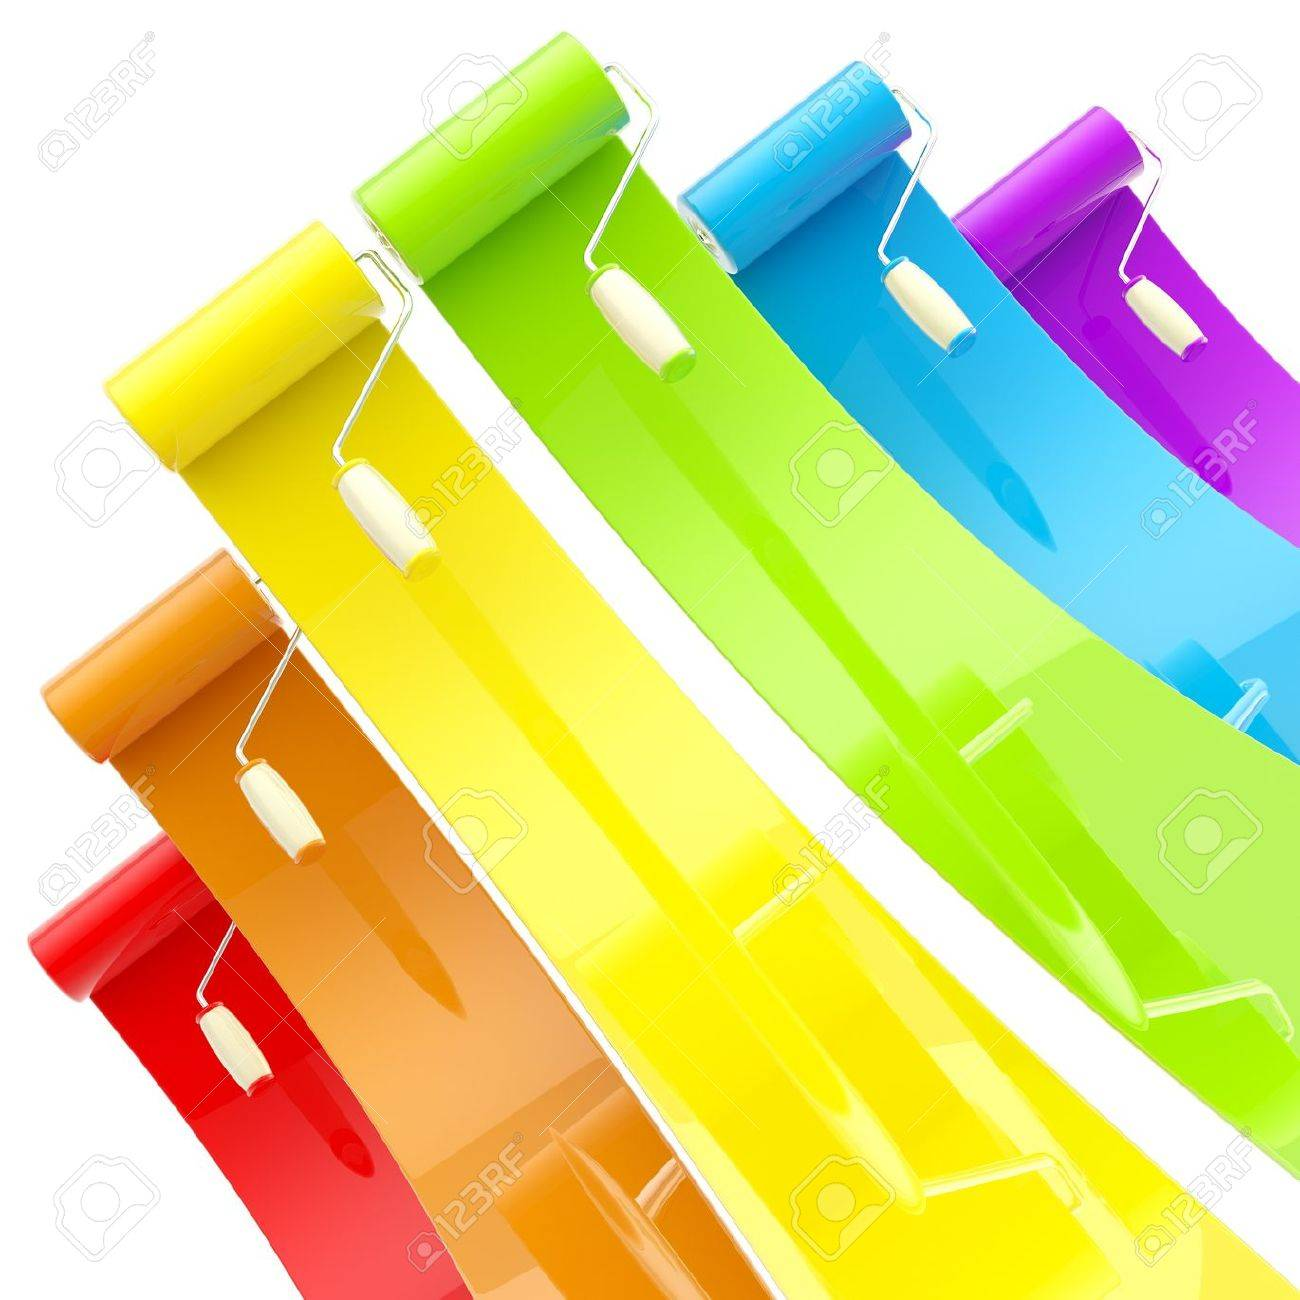 Colorful glossy paint rollers with color strokes Stock Photo - 12449280